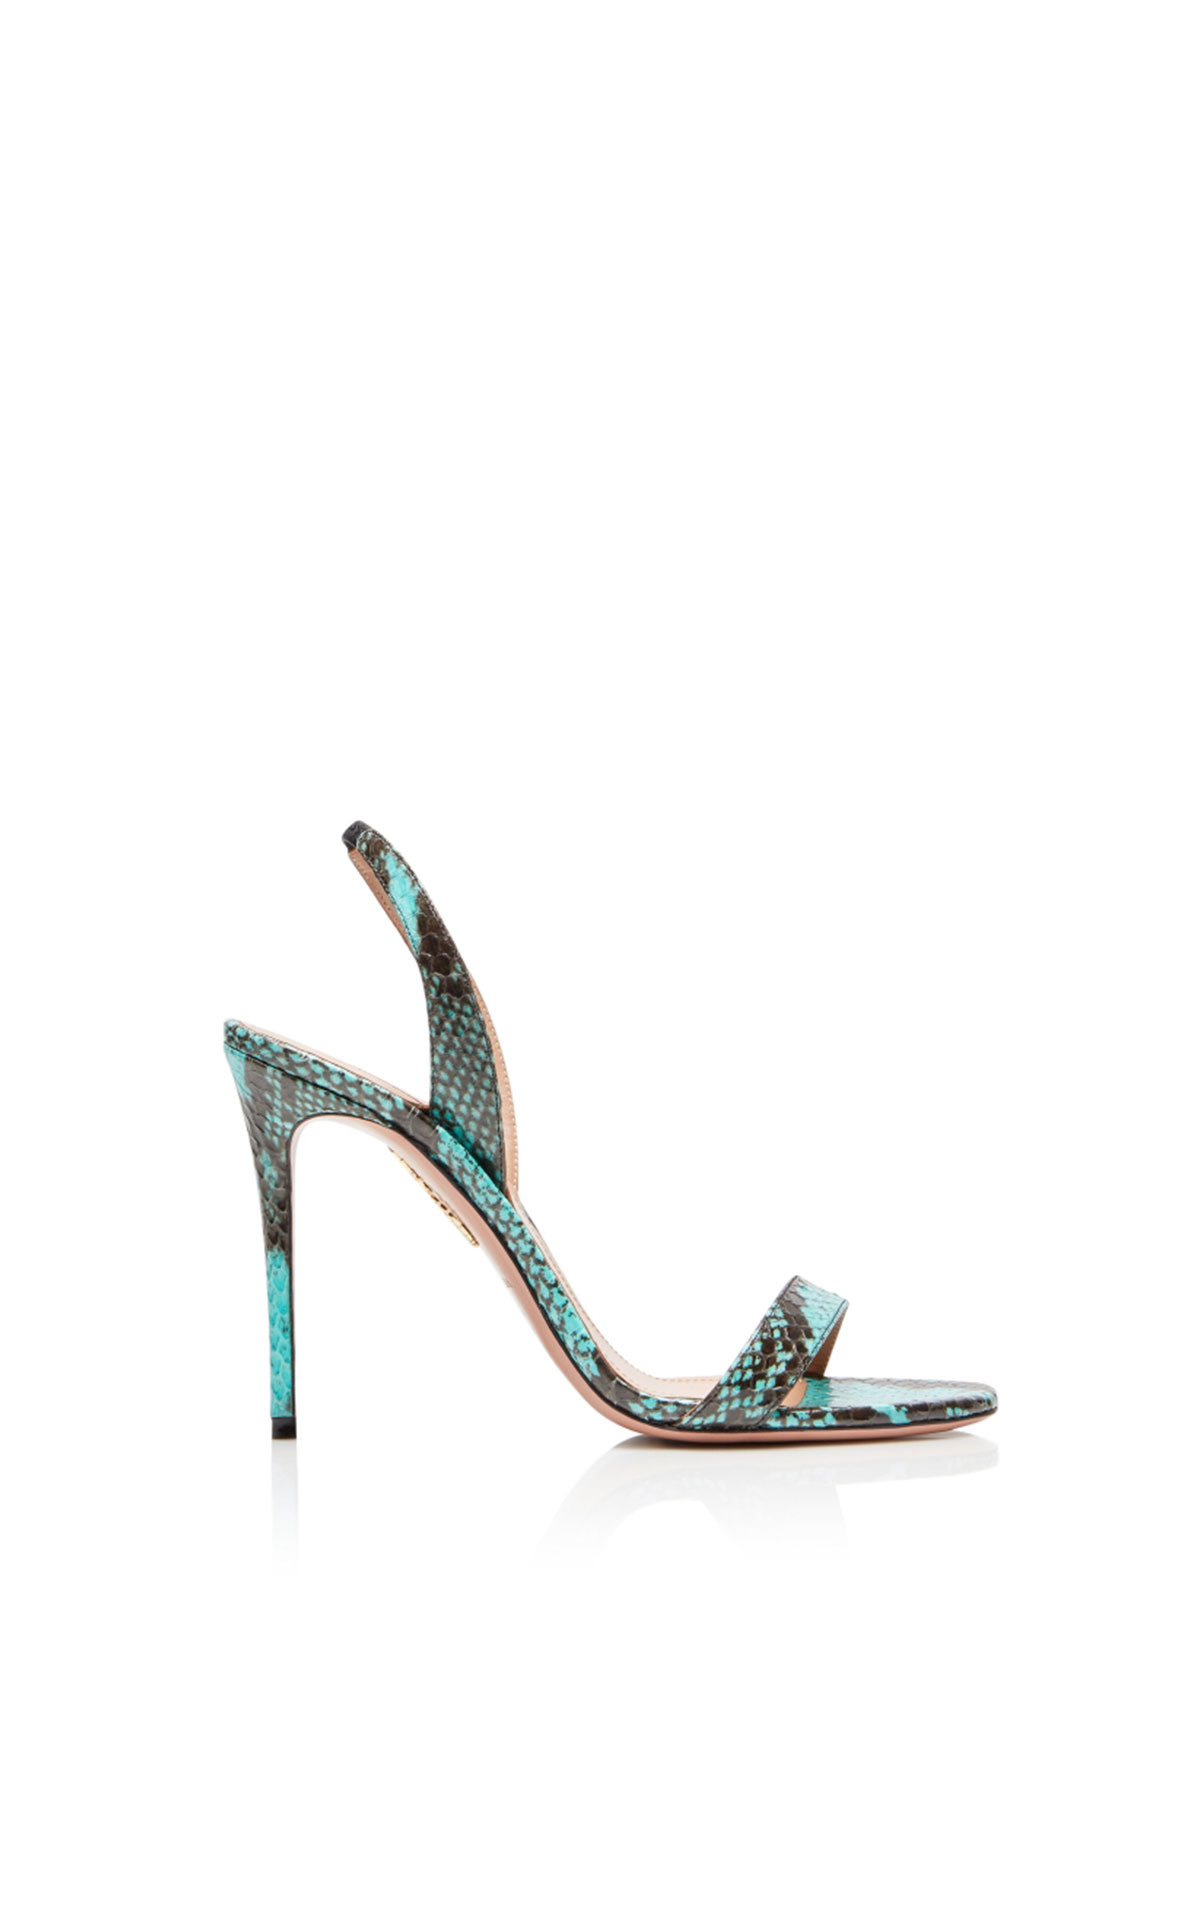 Aquazzura So nude sandal 105 turquoise from Bicester Village